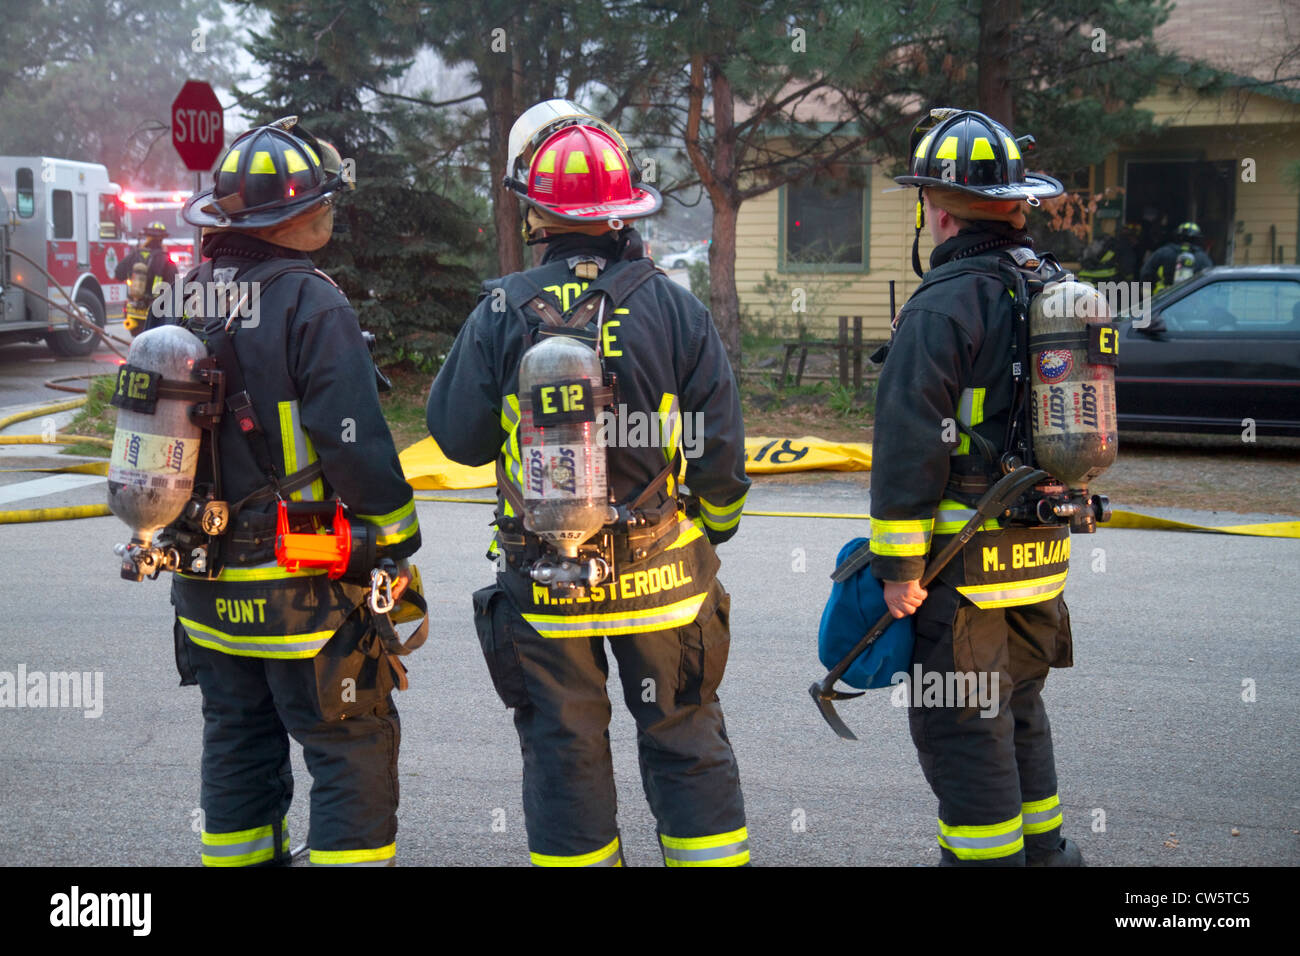 Firefighters respond to an emergency in Boise, Idaho, USA. - Stock Image